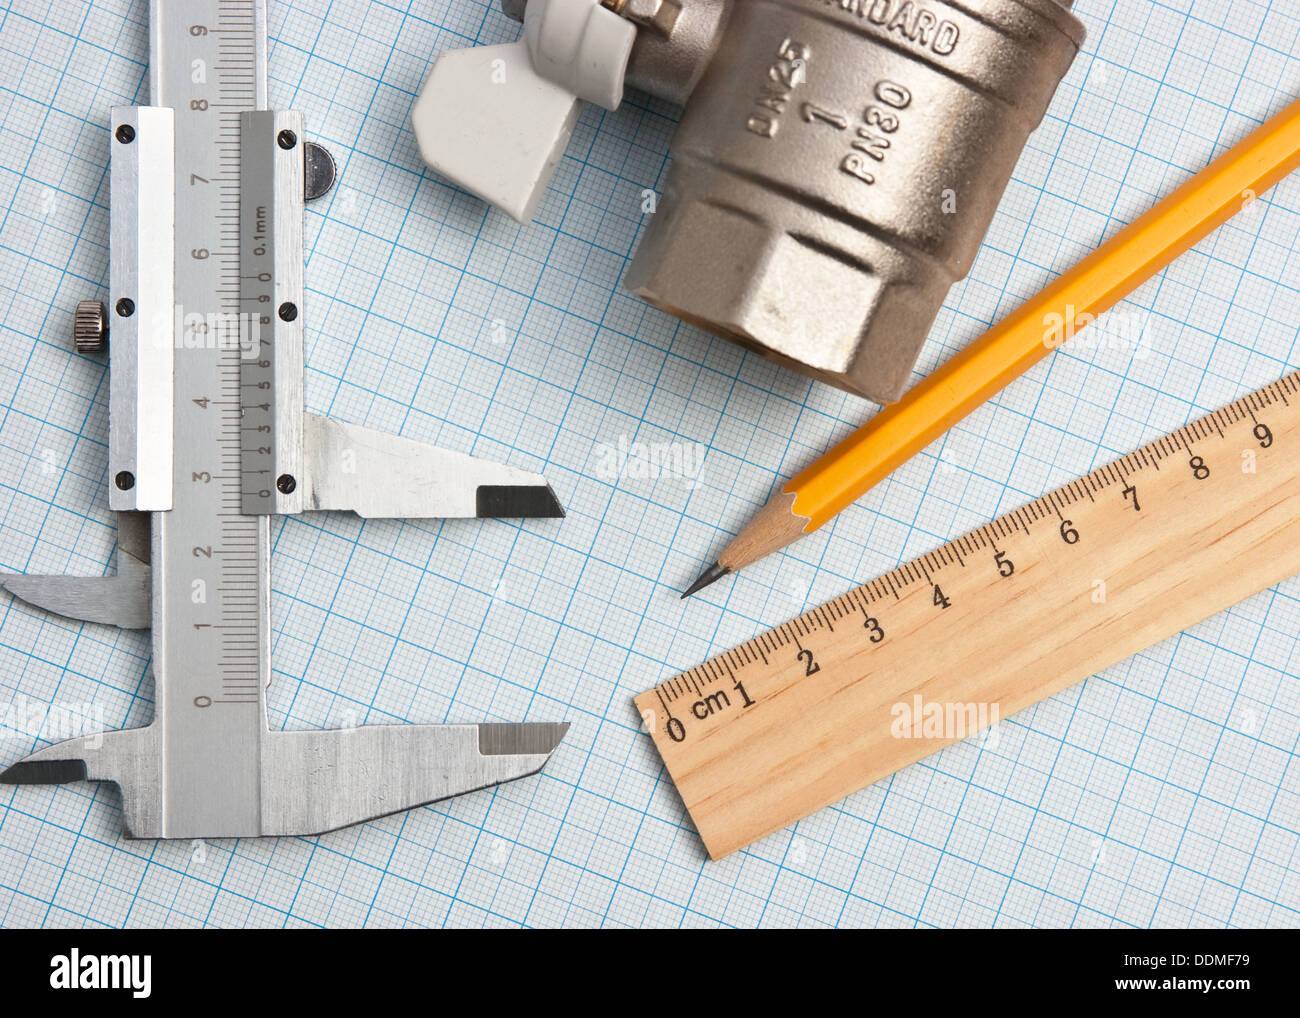 Water Inlet Valve On A Background Of Graph Paper Stock Photo